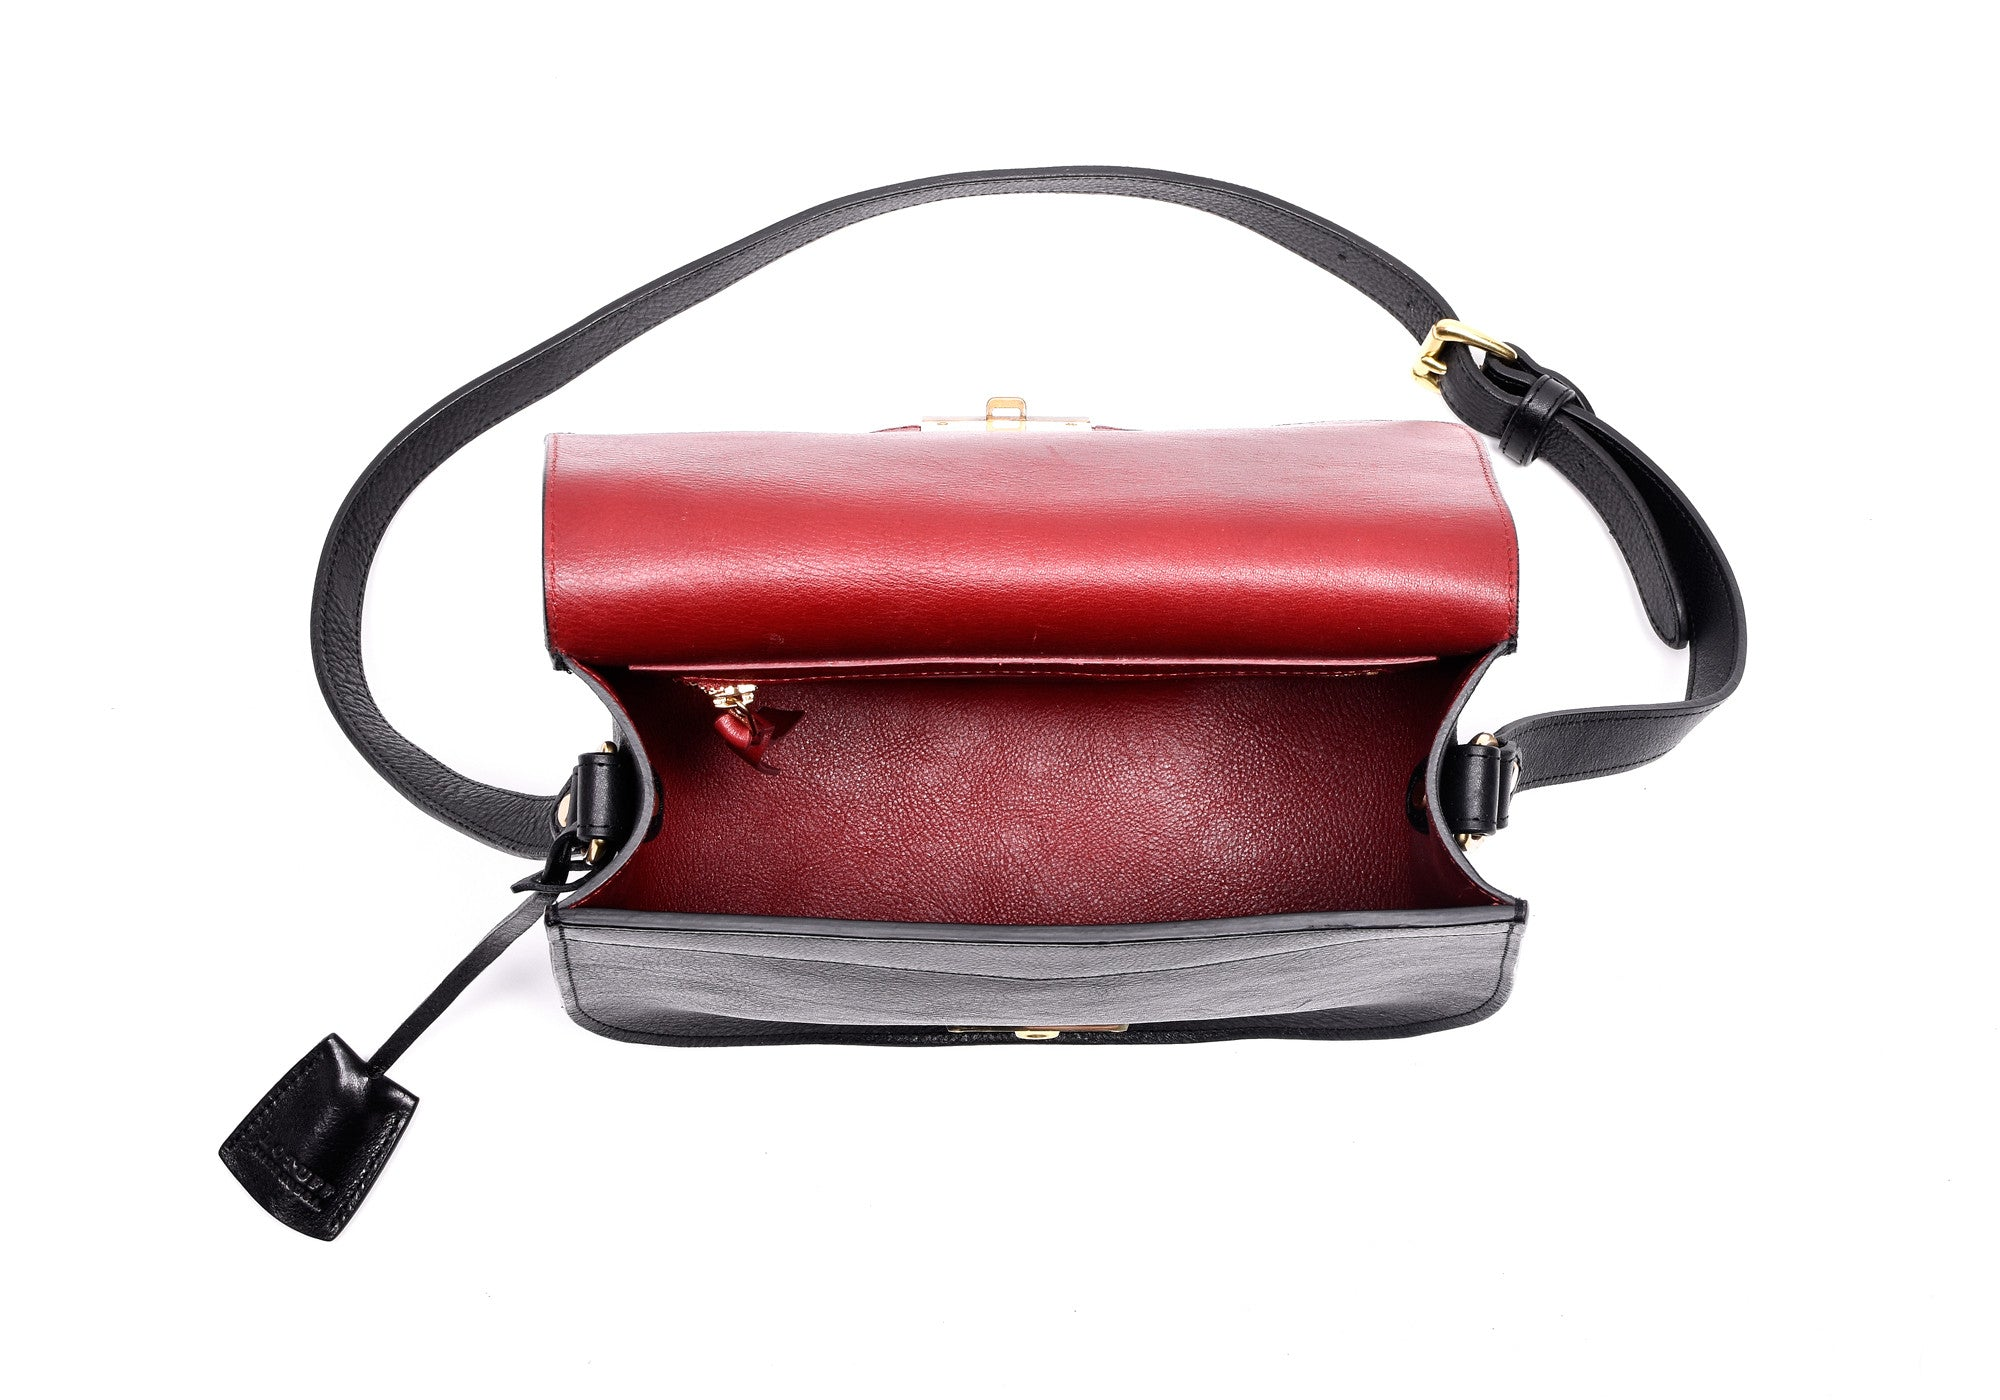 Top Open View of Arc Shoulder Bag Black-Red